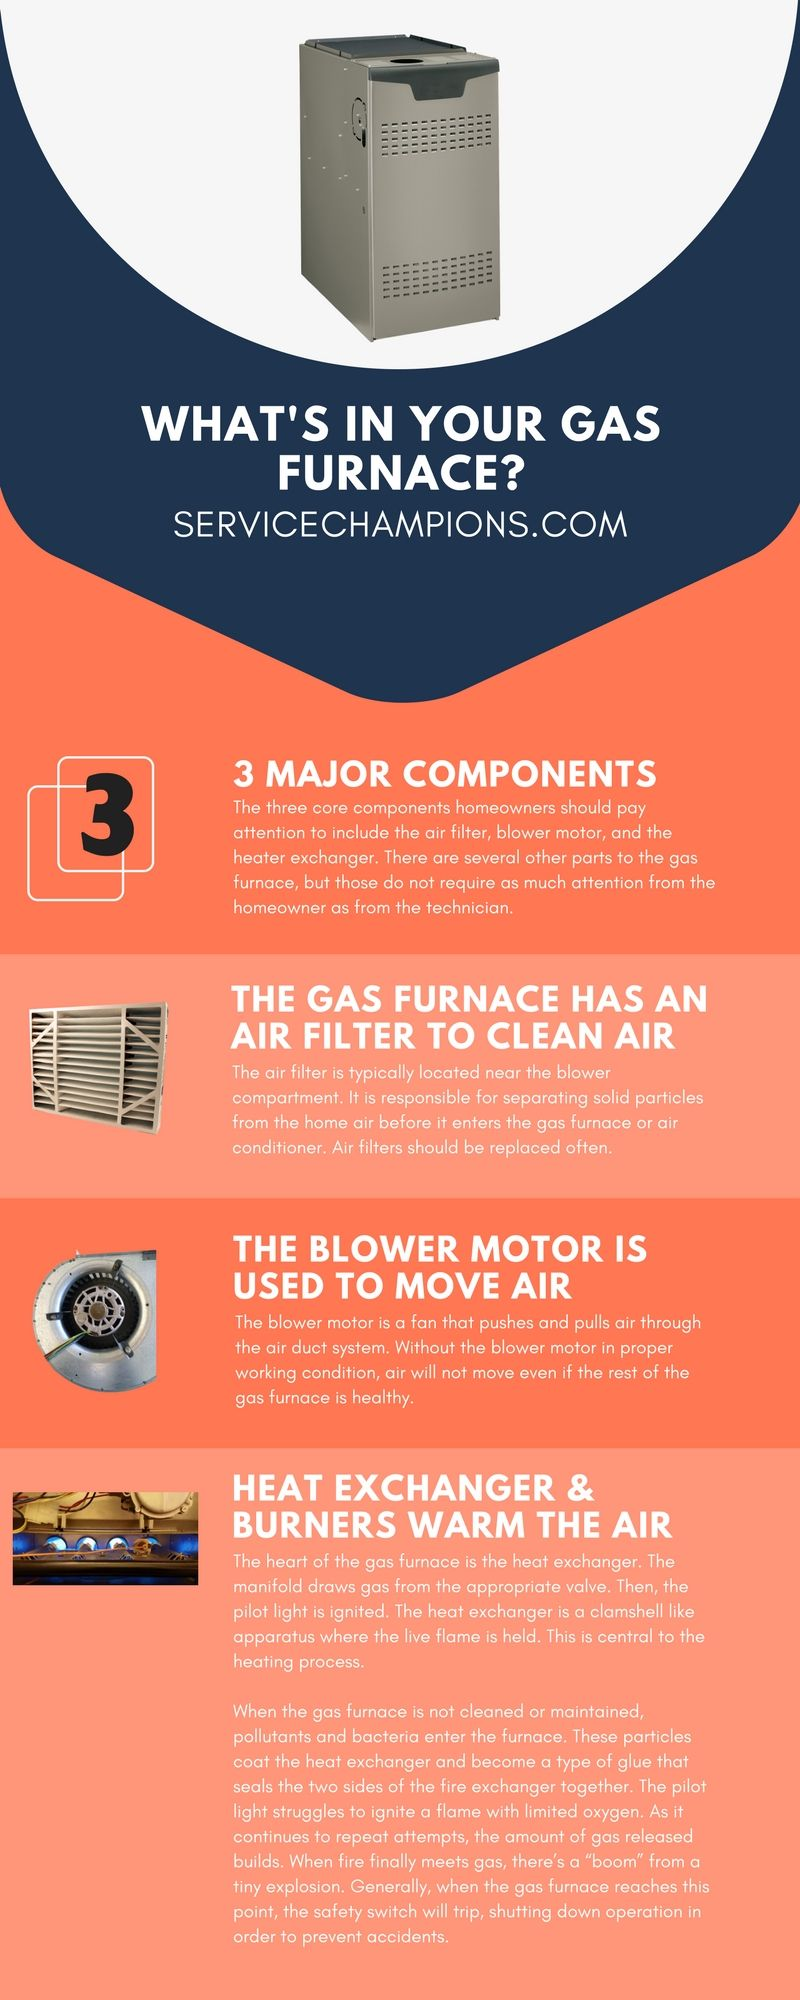 What's In Your Gas Furnace? Service Champions HVAC